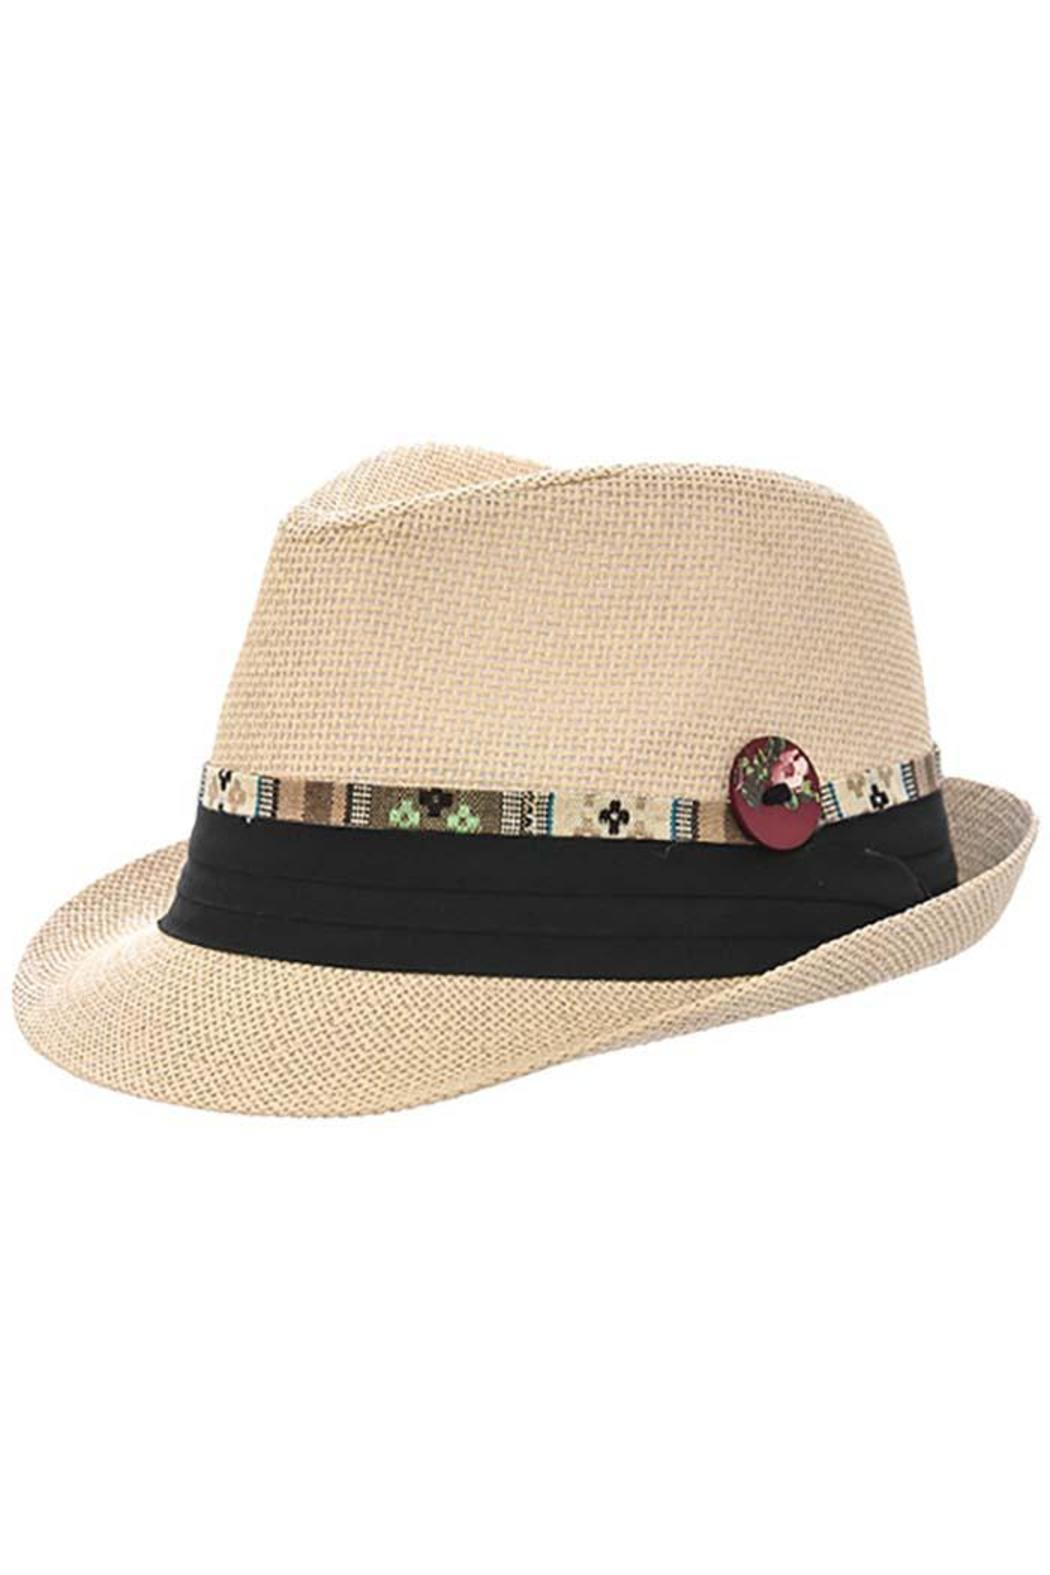 The Hatter Company Aztec Ribbon Fedora - Front Cropped Image